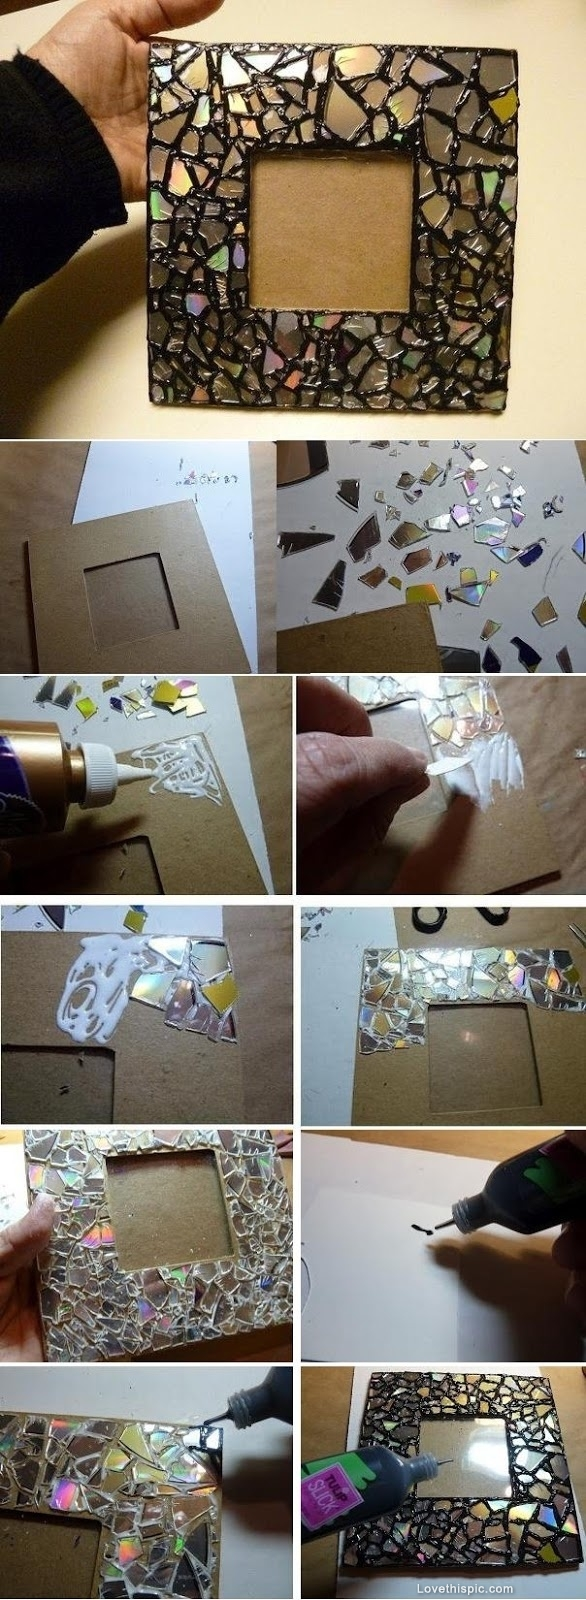 DIY Mosaic Frame from Old CDs